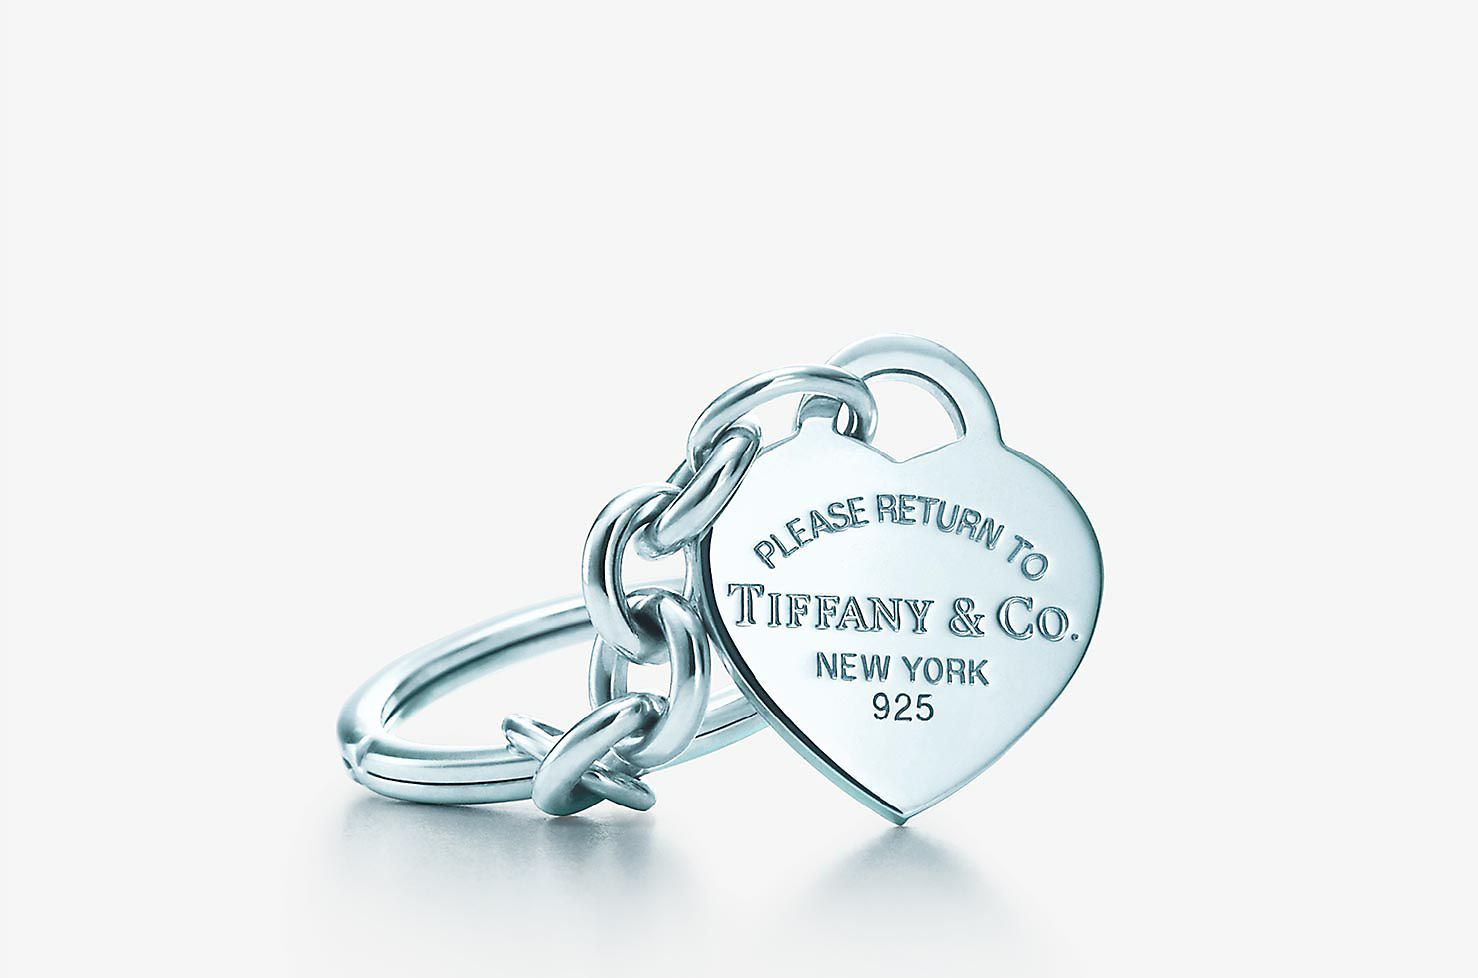 Tiffany and co discount coupon codes